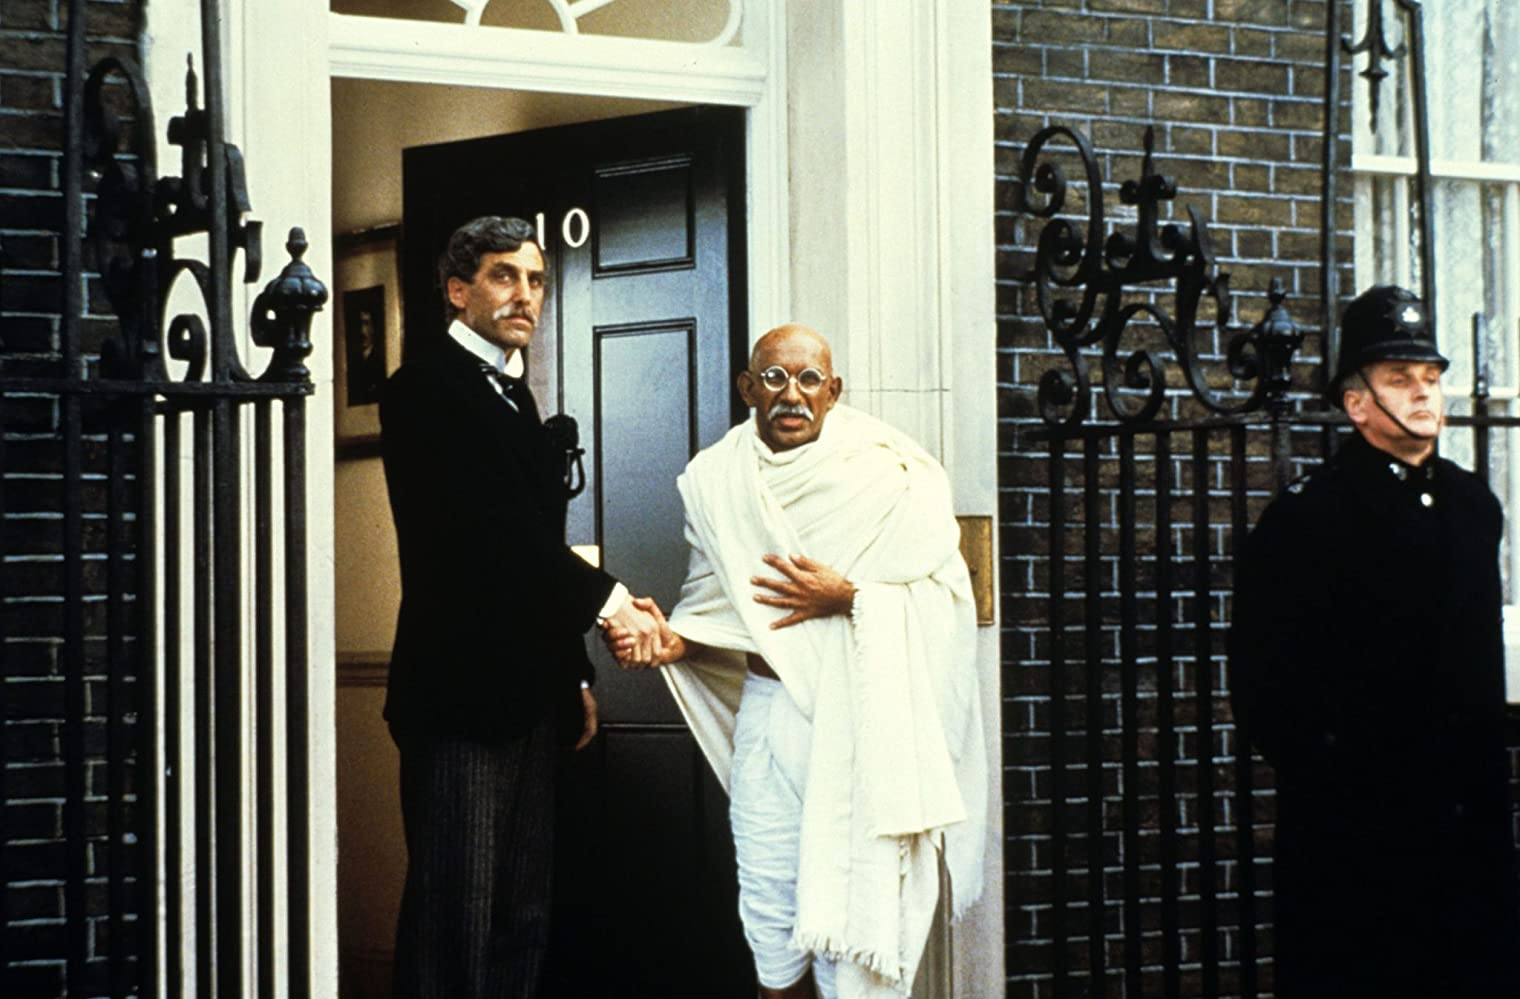 Ben Kingsley and Terrence Hardiman in Gandhi (1982)